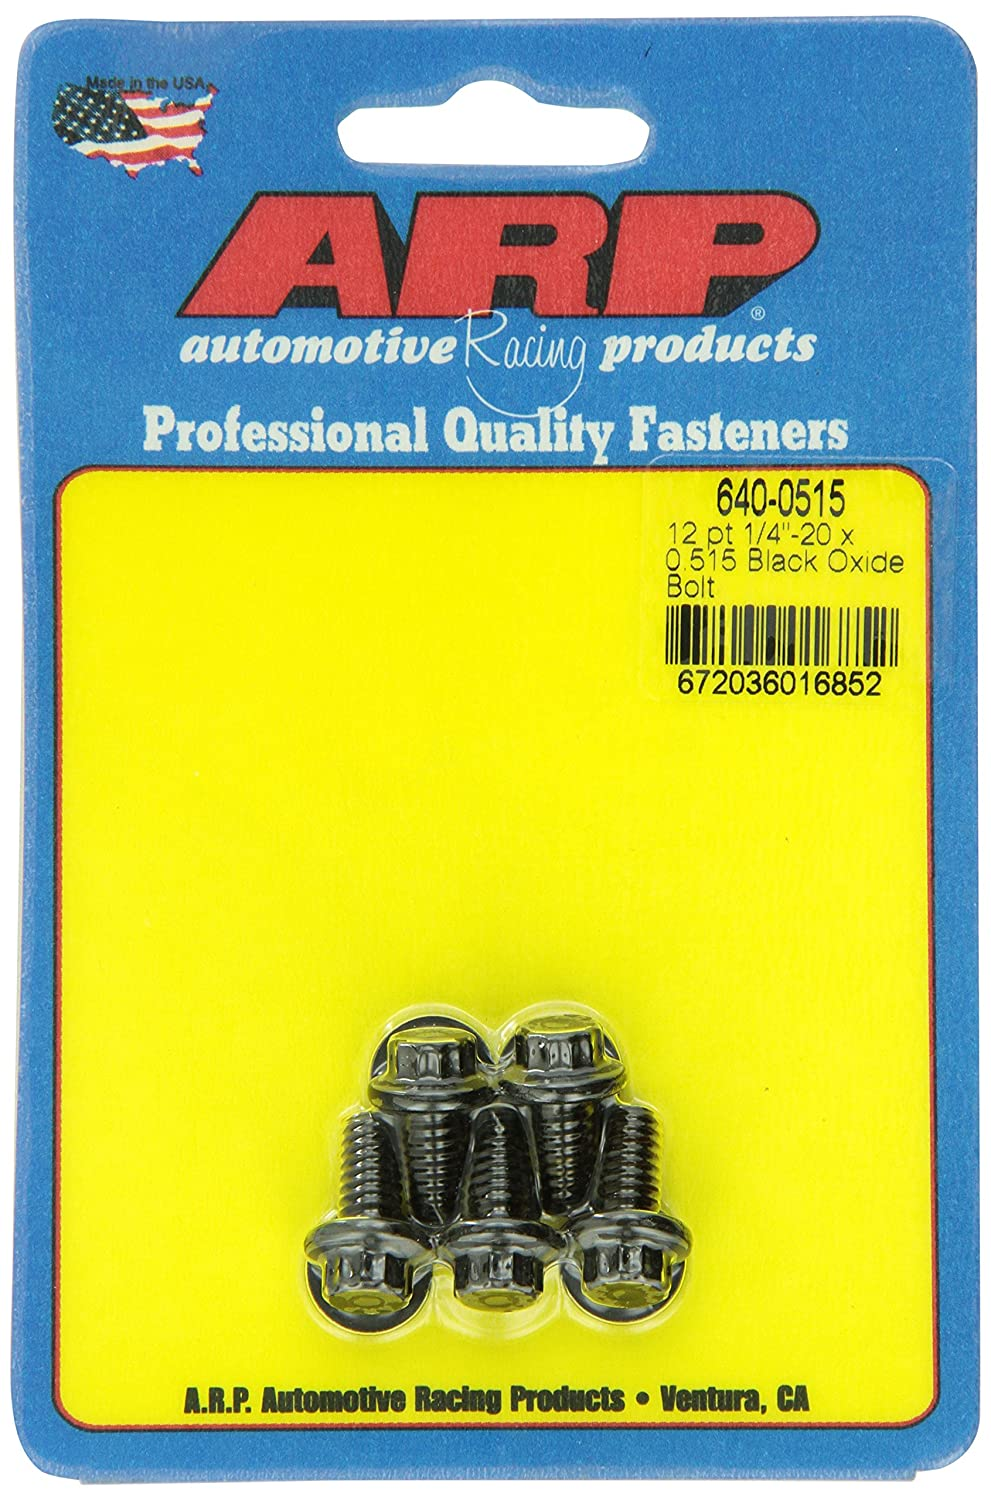 ARP 640-0515 Black Oxide 1/4-20' RH Thread 0.515' UHL 12-Point Bolt with 5/16' Socket and Washer, (Set of 5)